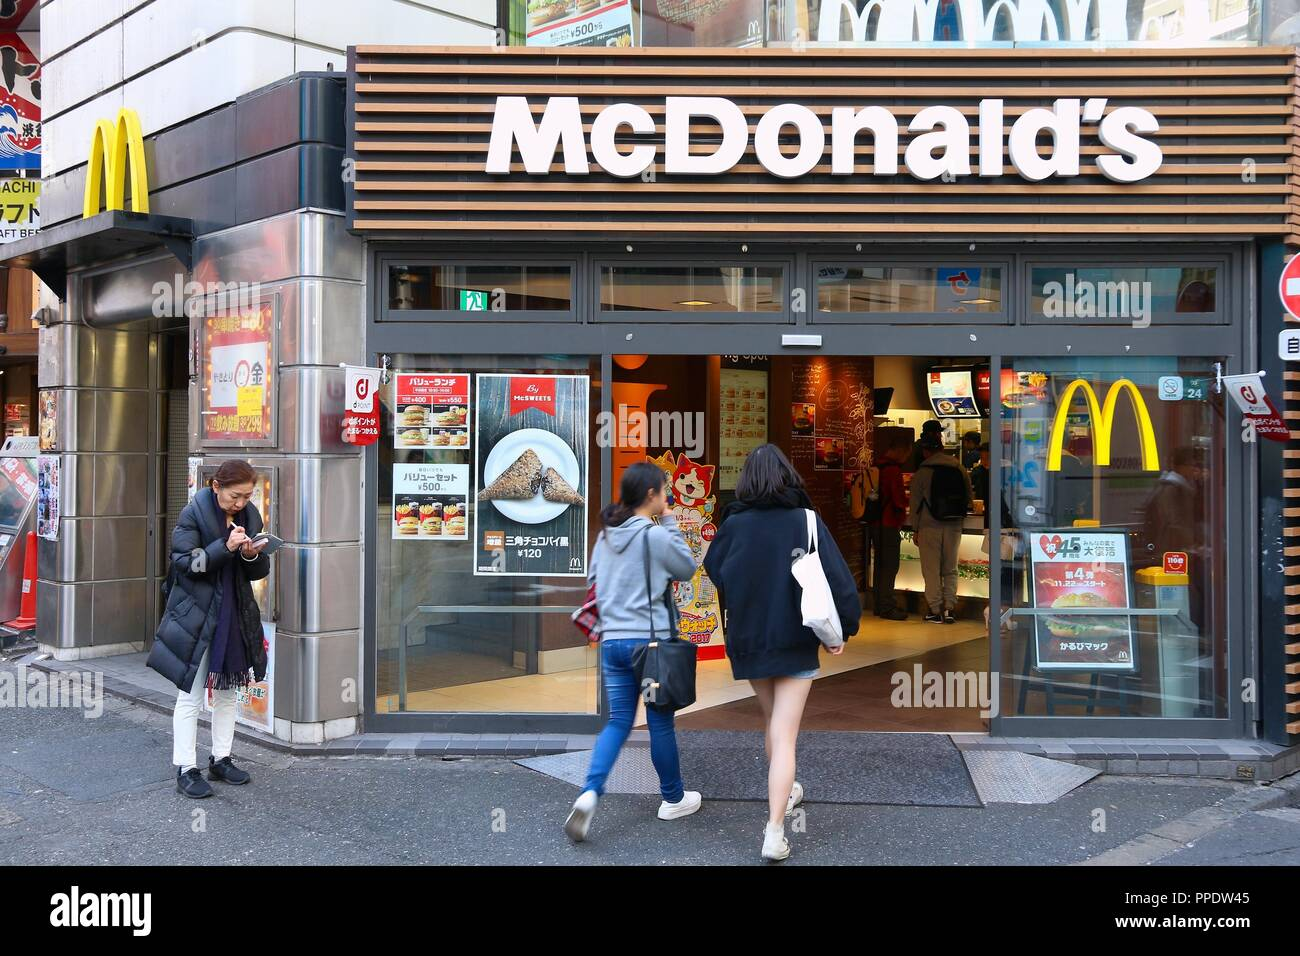 Tokyo Japan December 3 2016 People Visit Mcdonalds Fast Food